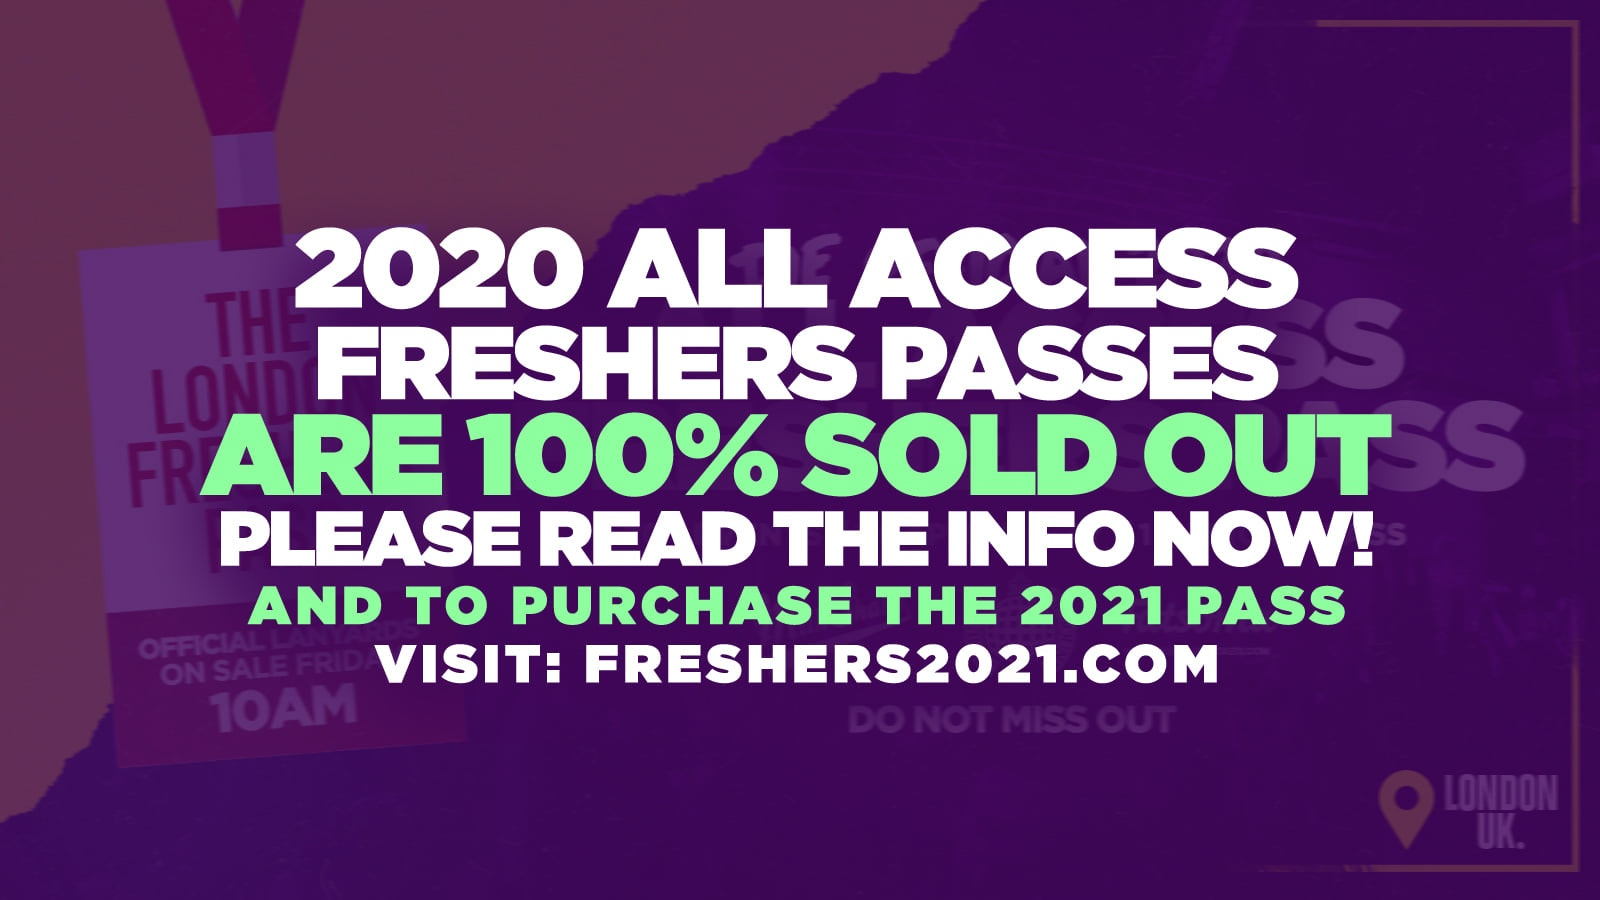 (2020 Freshers) The Official All Access London Freshers Pass (SOLD OUT FOR 2020) ❌